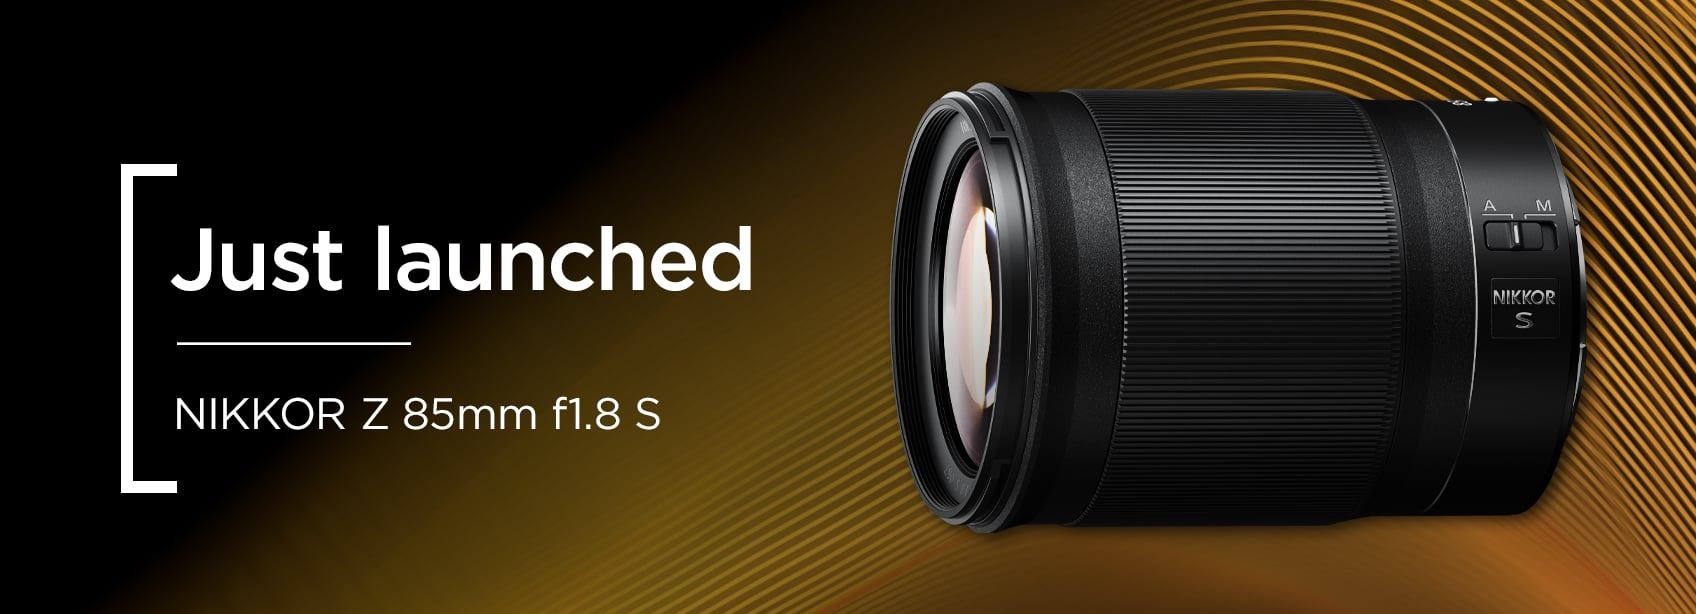 Just launched - Nikon Z 85mm f1.8 S Lens